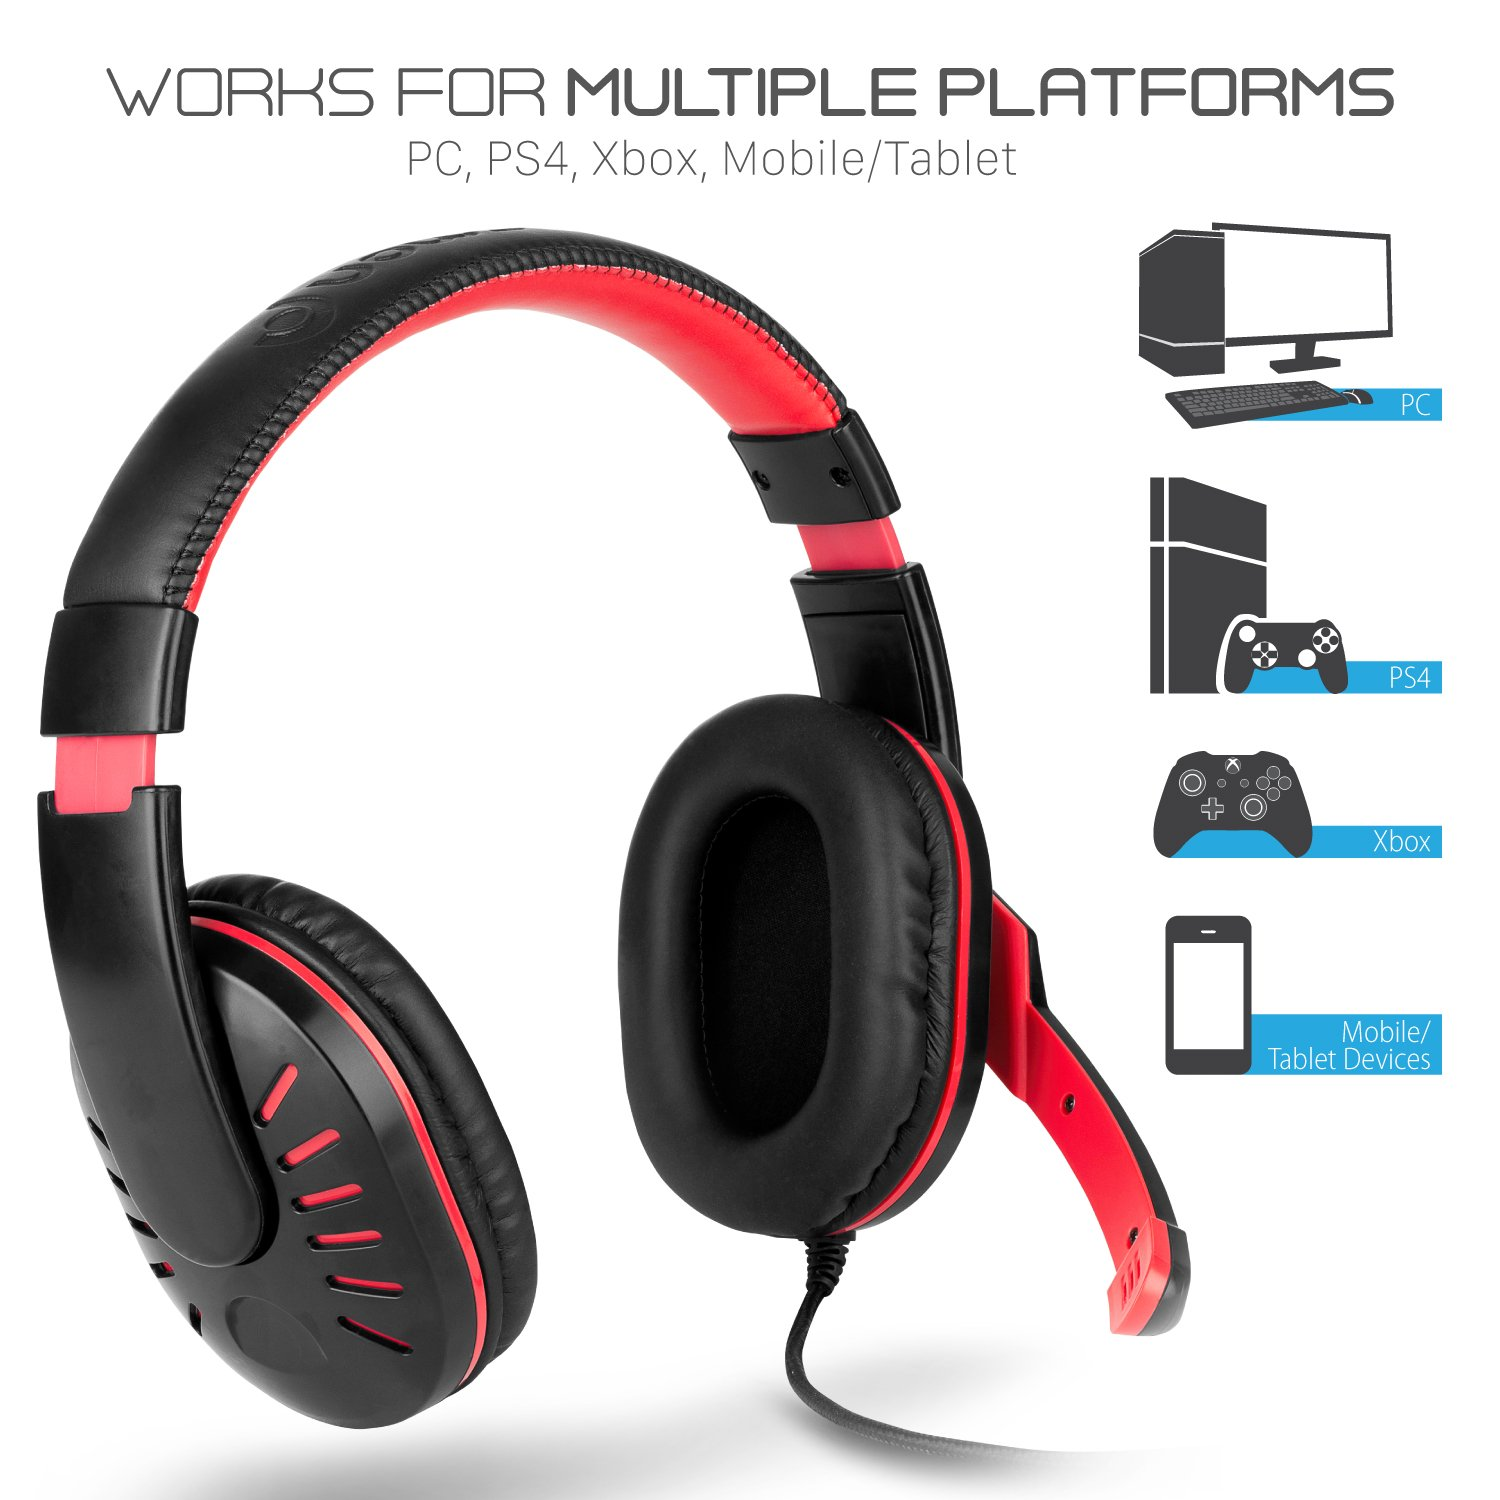 Jual Sades T Power Sa 701 Gaming Headset Terbaru 2018 Tpower Pc Fosmon 35mm Over The Ear Stereo Audio Wired